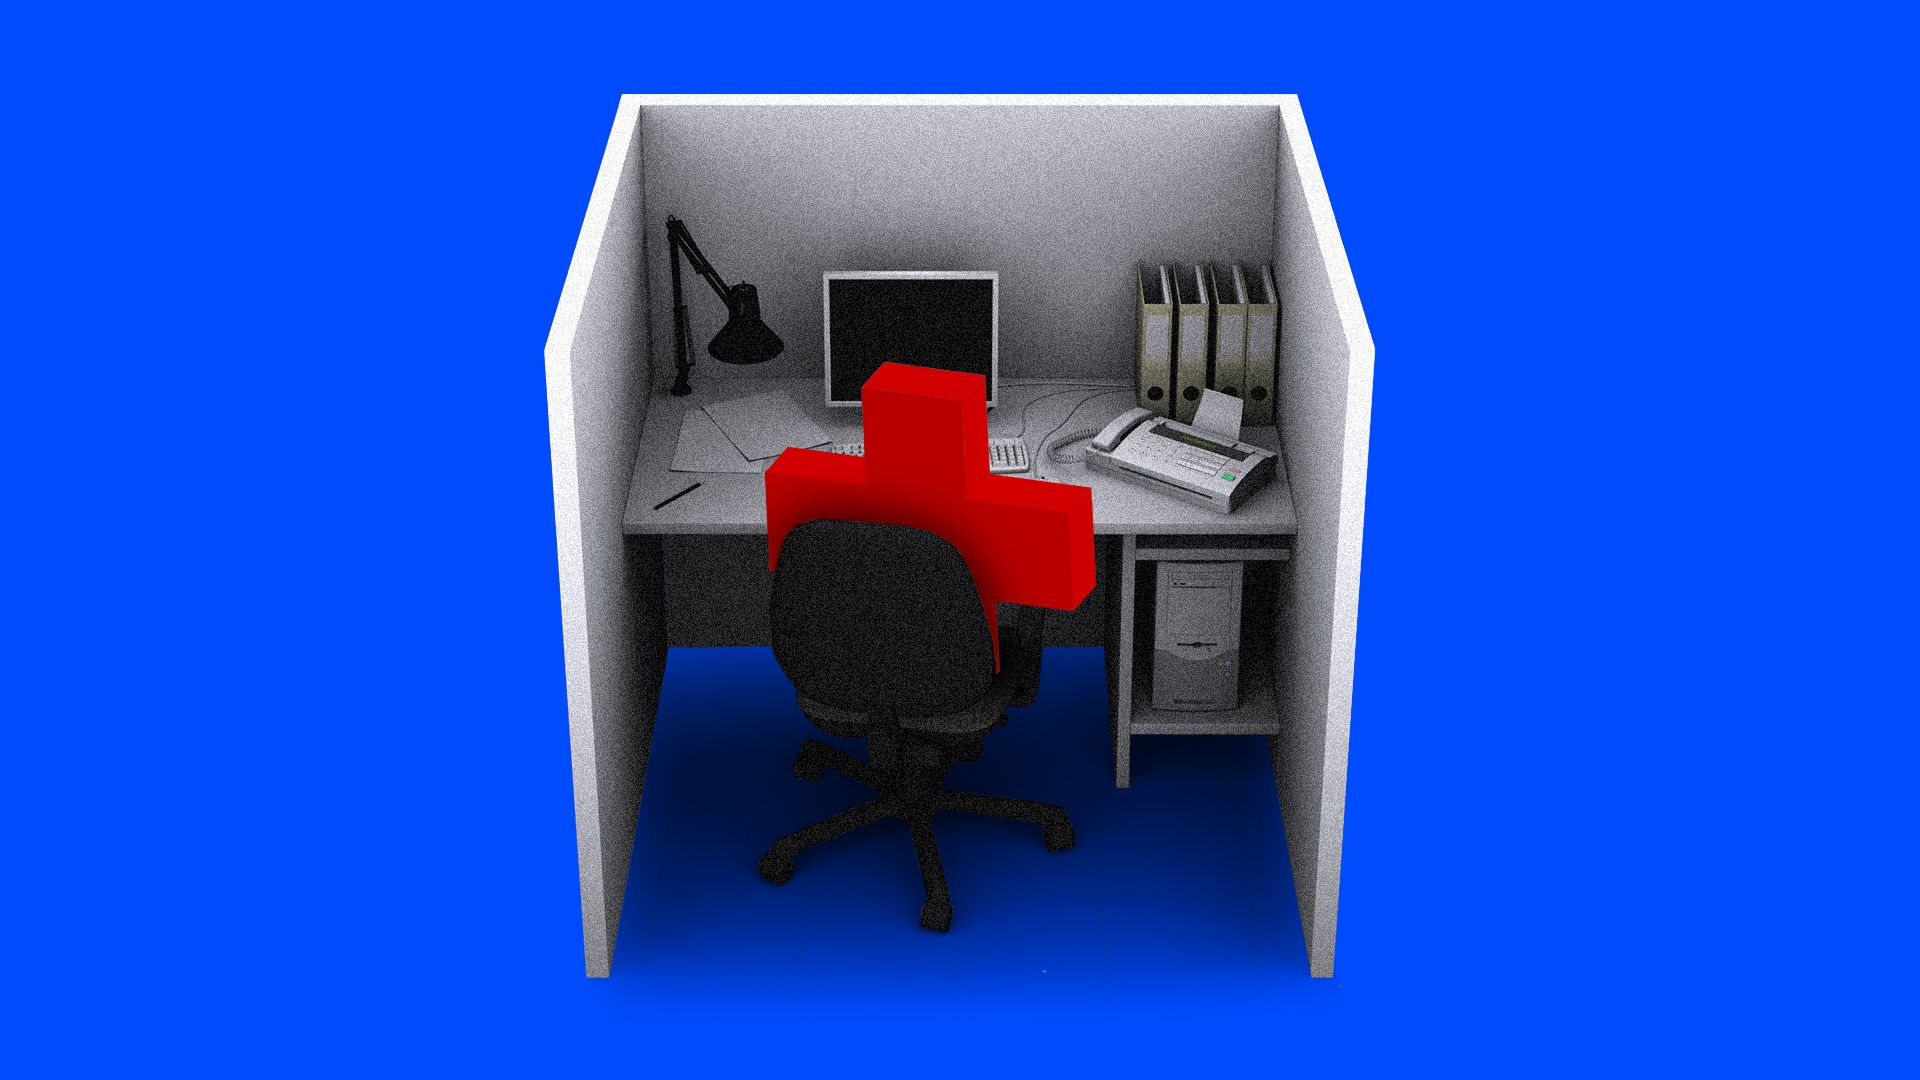 A red cross in a chair in a cubicle